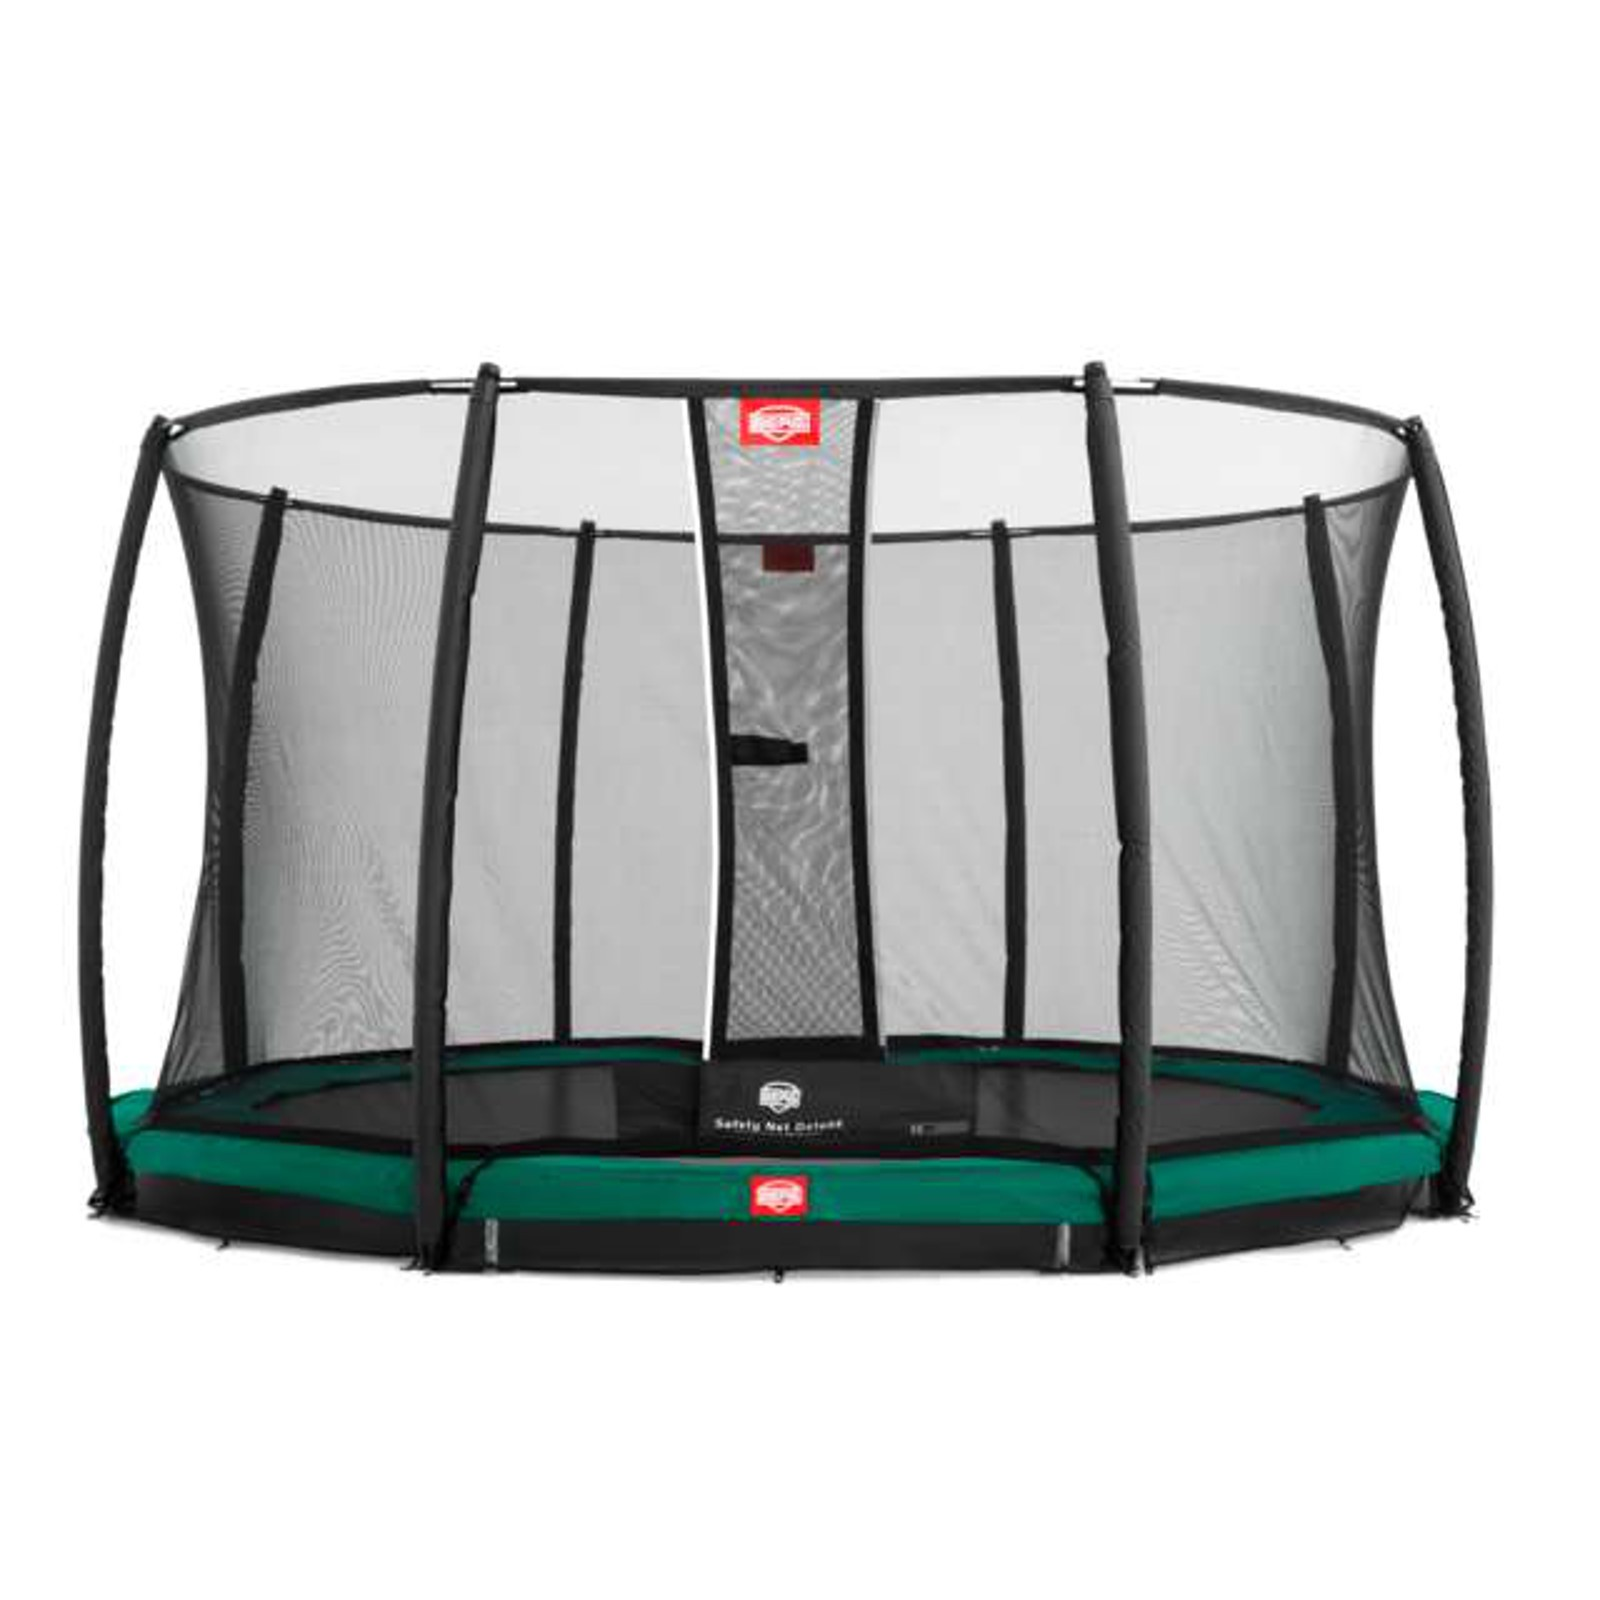 Berg Trampoline Berg Trampoline Inground Favorit Incl Safety Net Deluxe